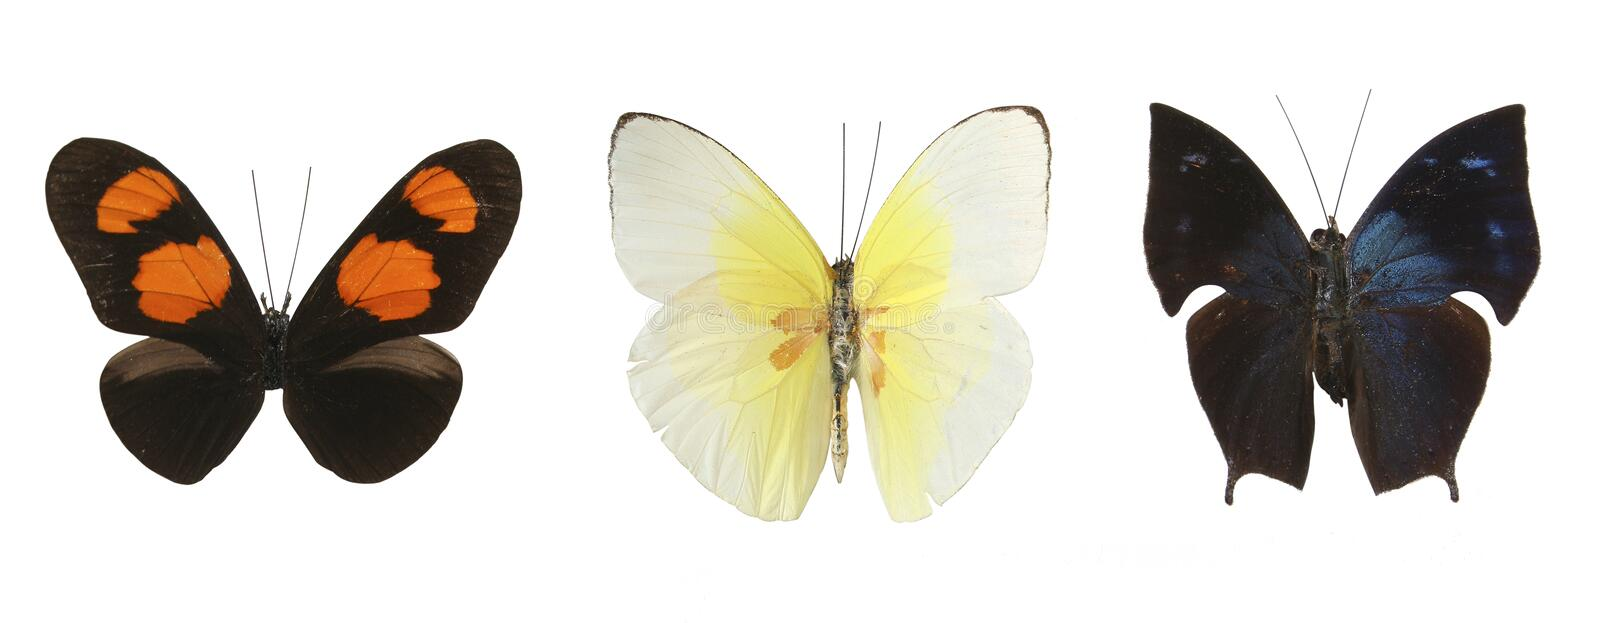 Colorful butterflies over a white background royalty free stock photography